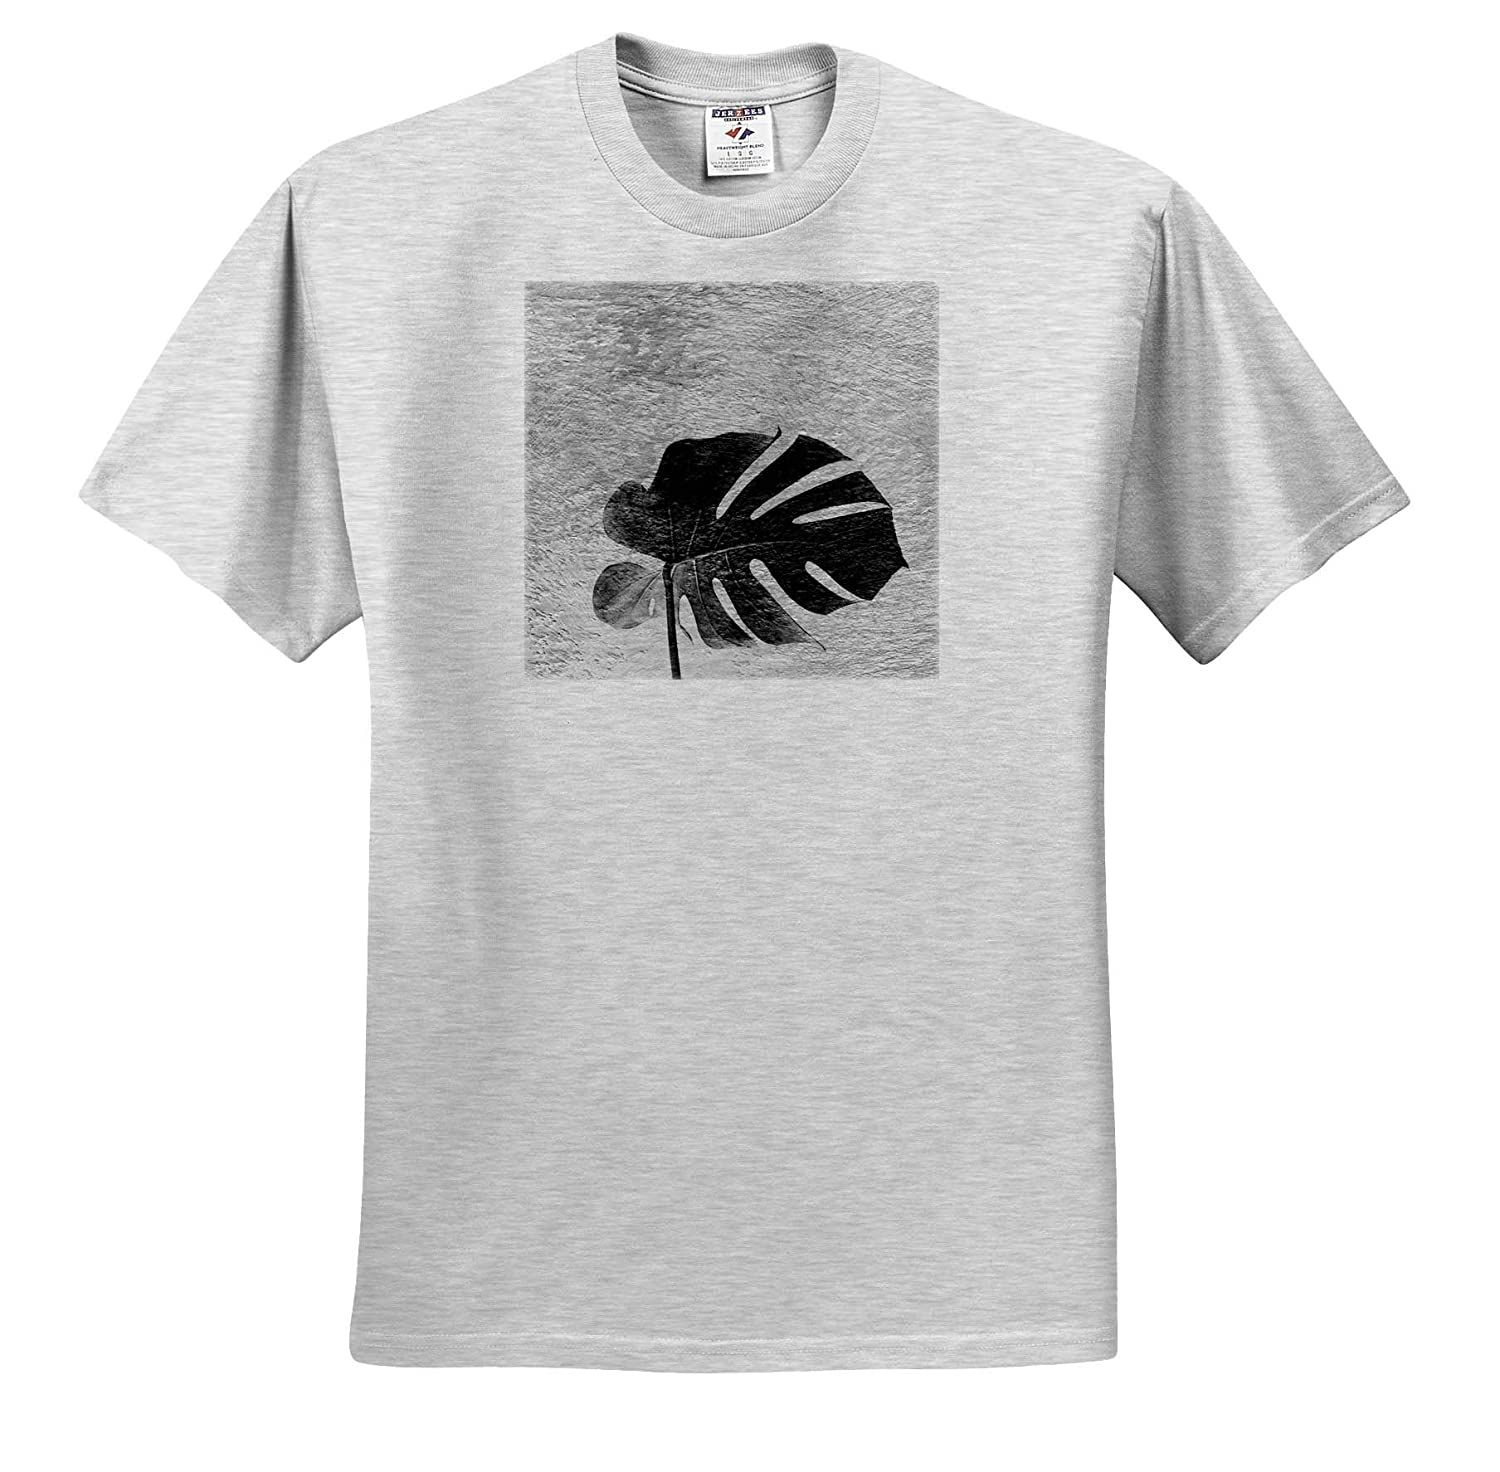 ts/_314210 Adult T-Shirt XL 3dRose Cassie Peters Digital Art Tropical Leaf in Black and White